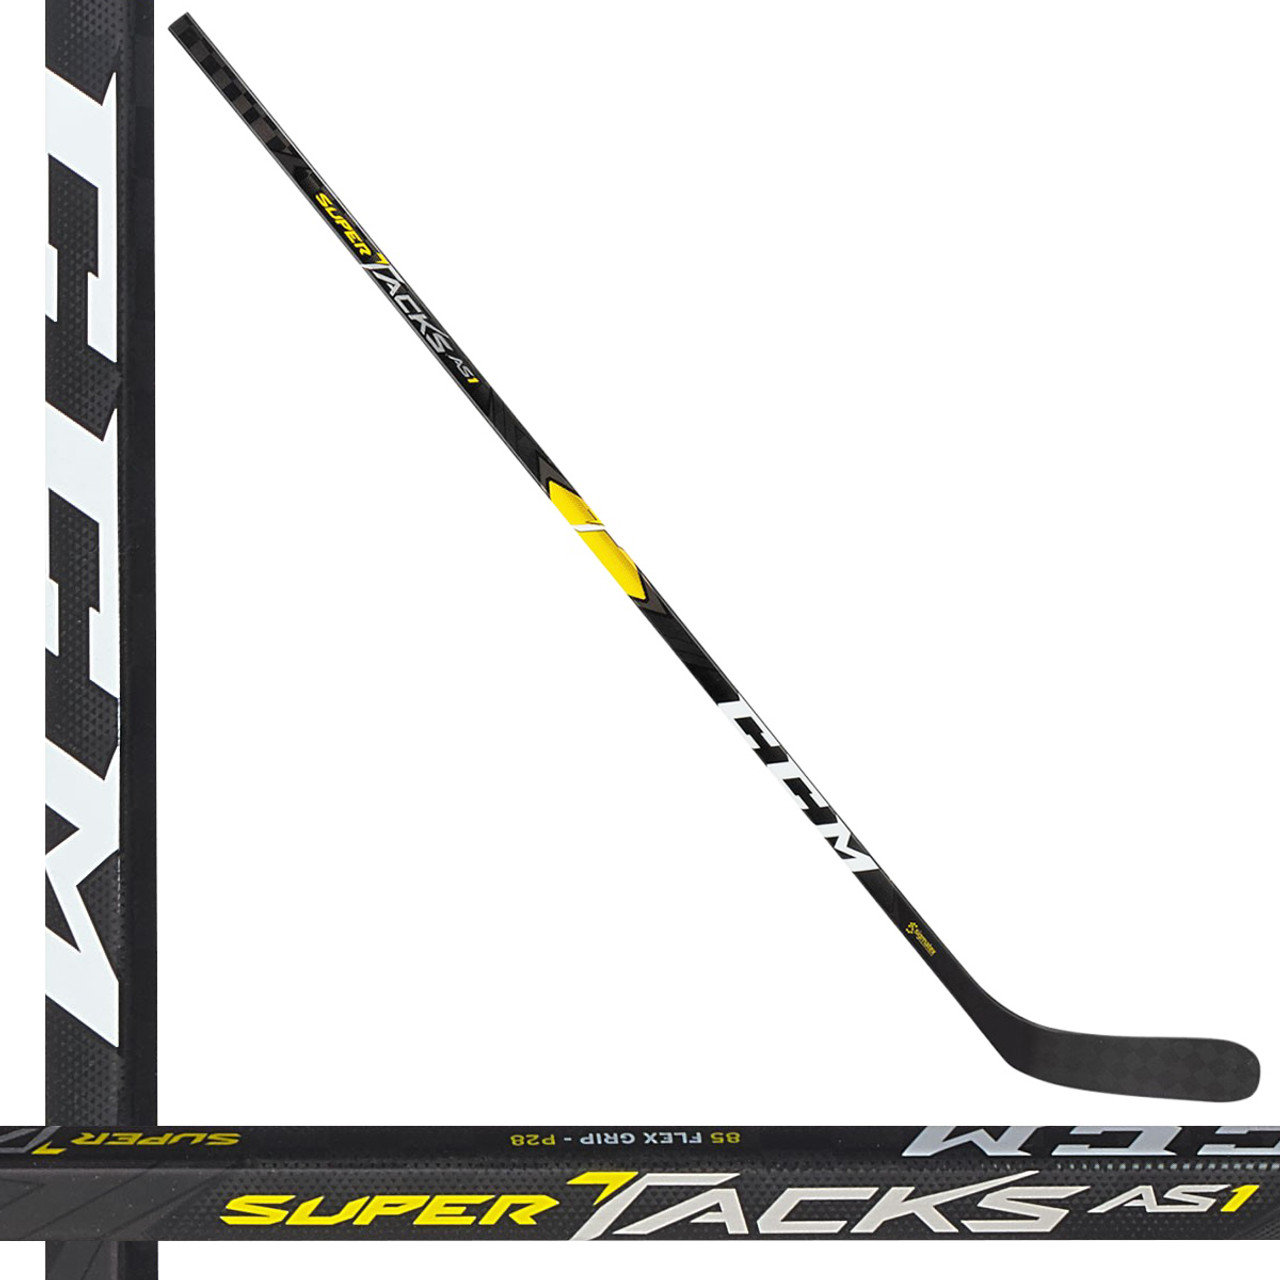 a5d03866f5c CCM Super Tack AS1 Intermediate Hockey Stick - everysportforless.com